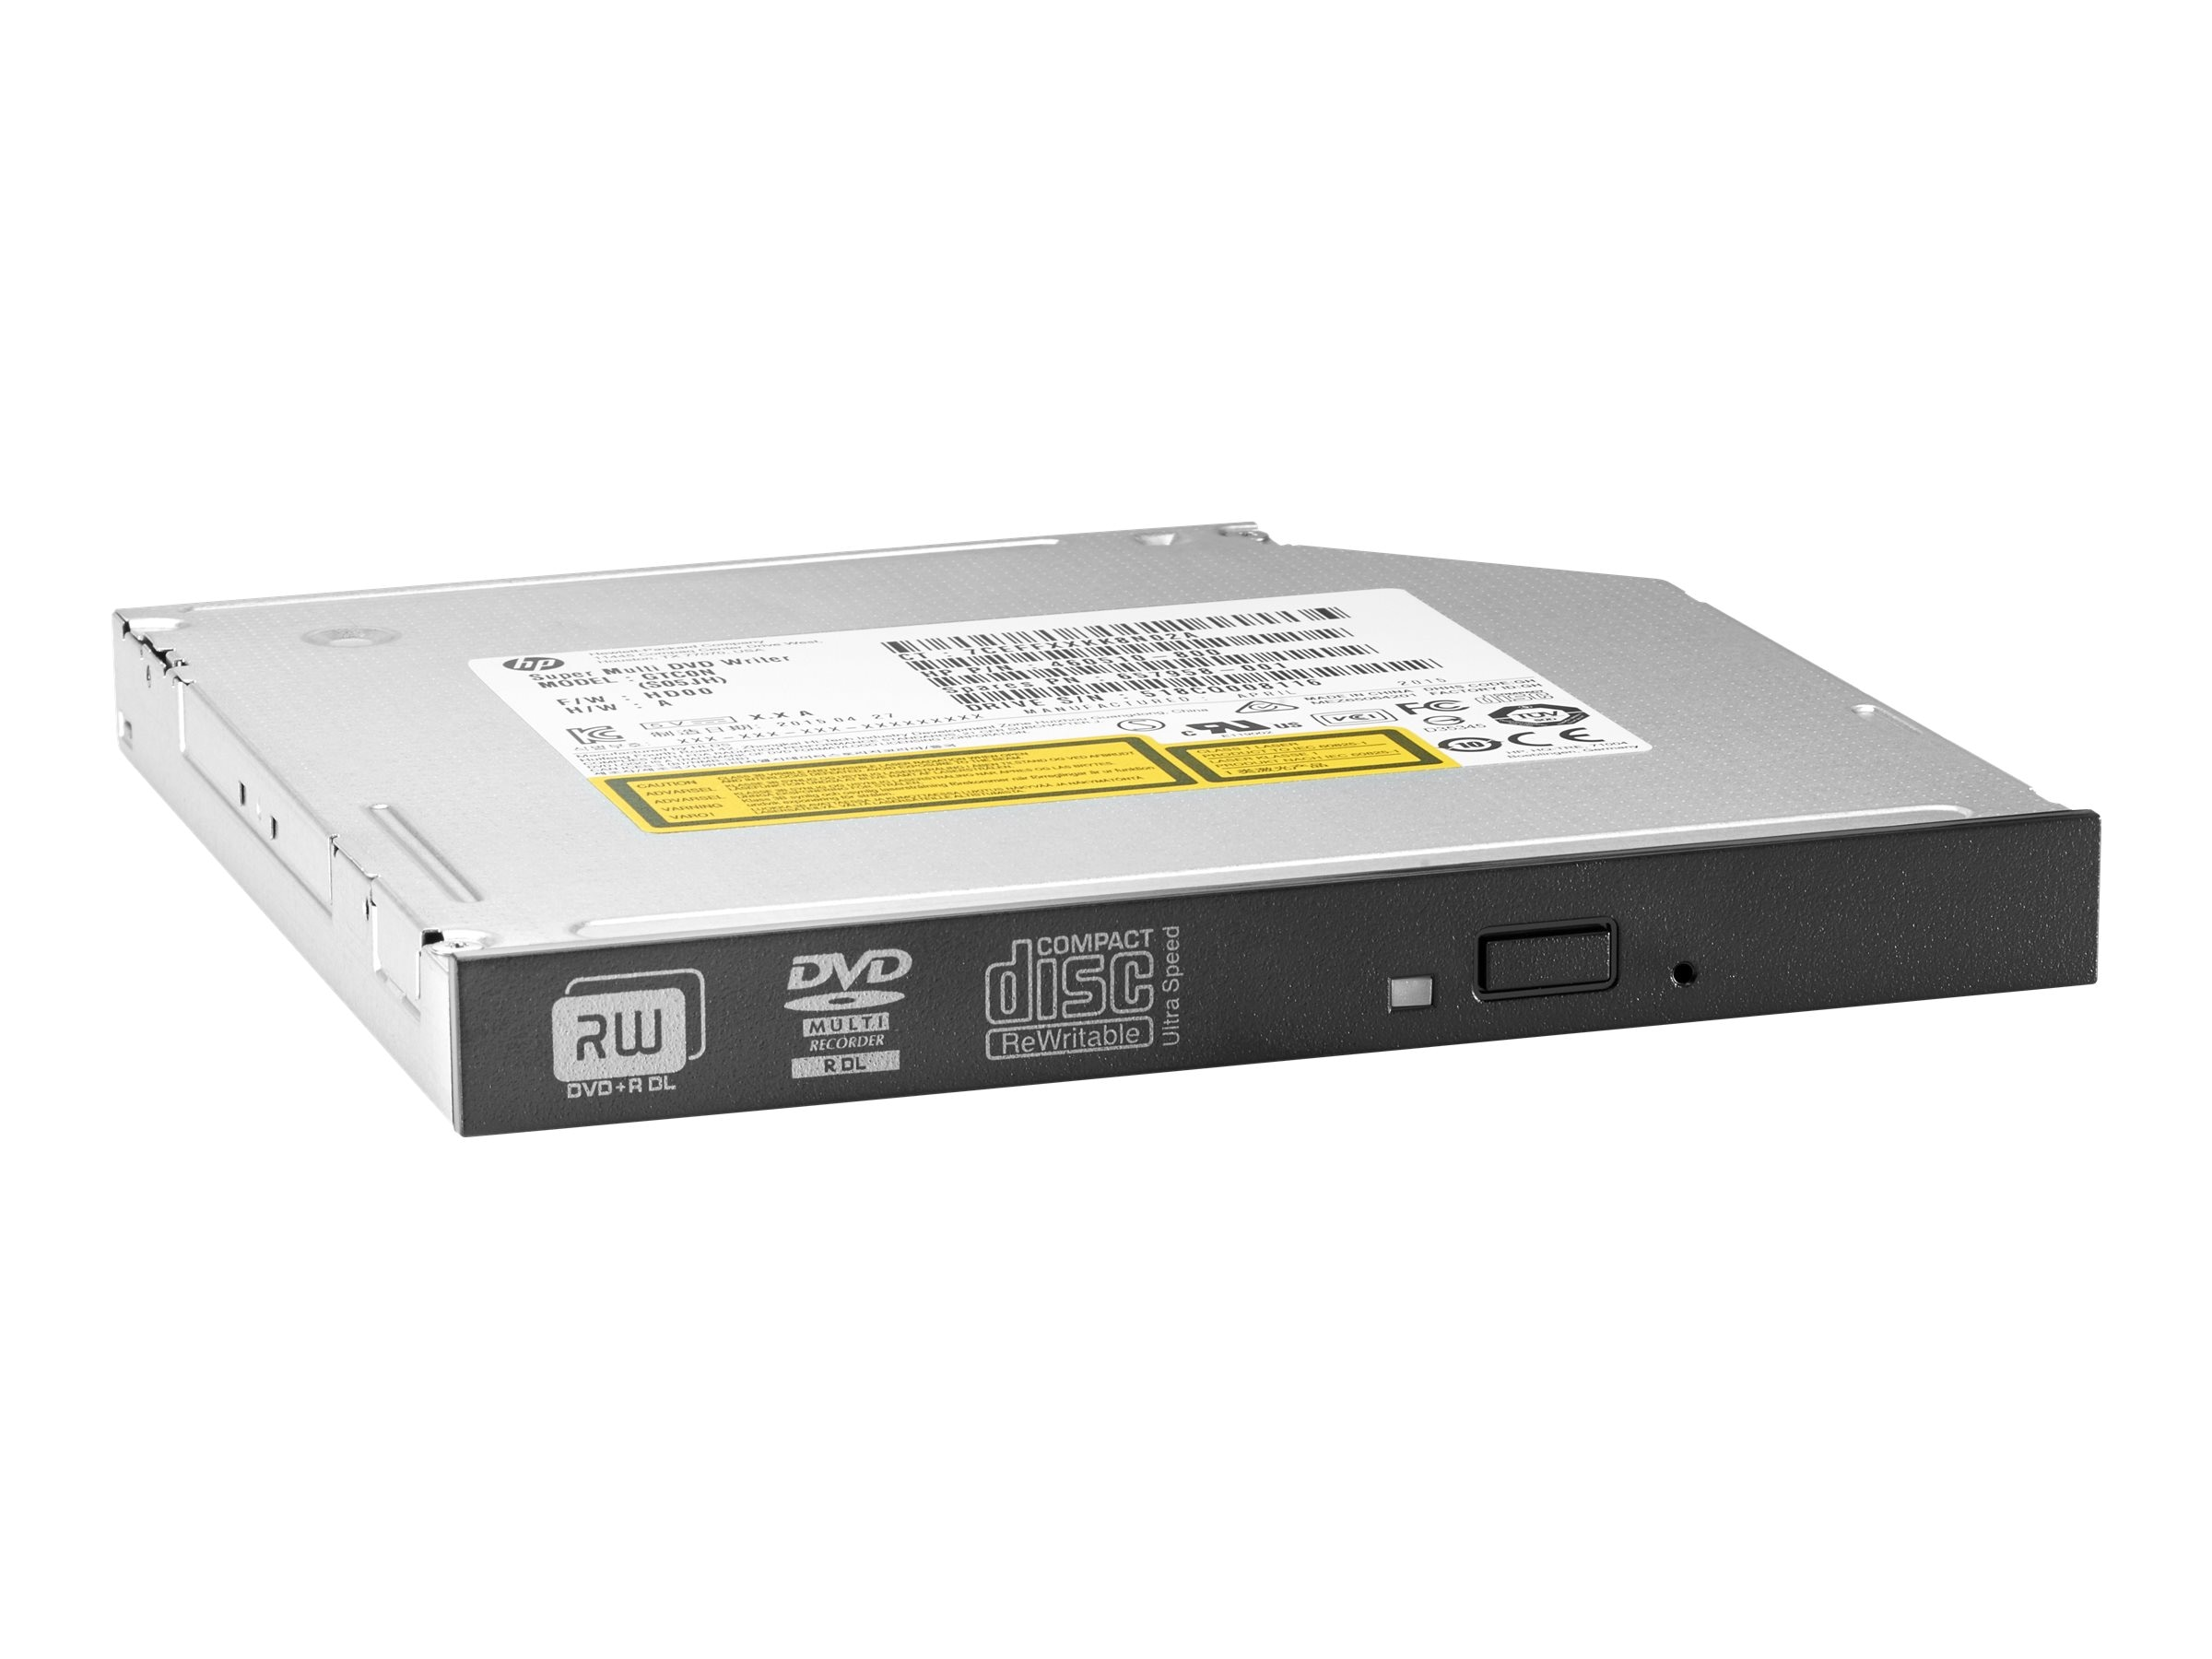 HP 9.5mm Desktop G2 Slim DVD-Writer Drive, N1M42AA